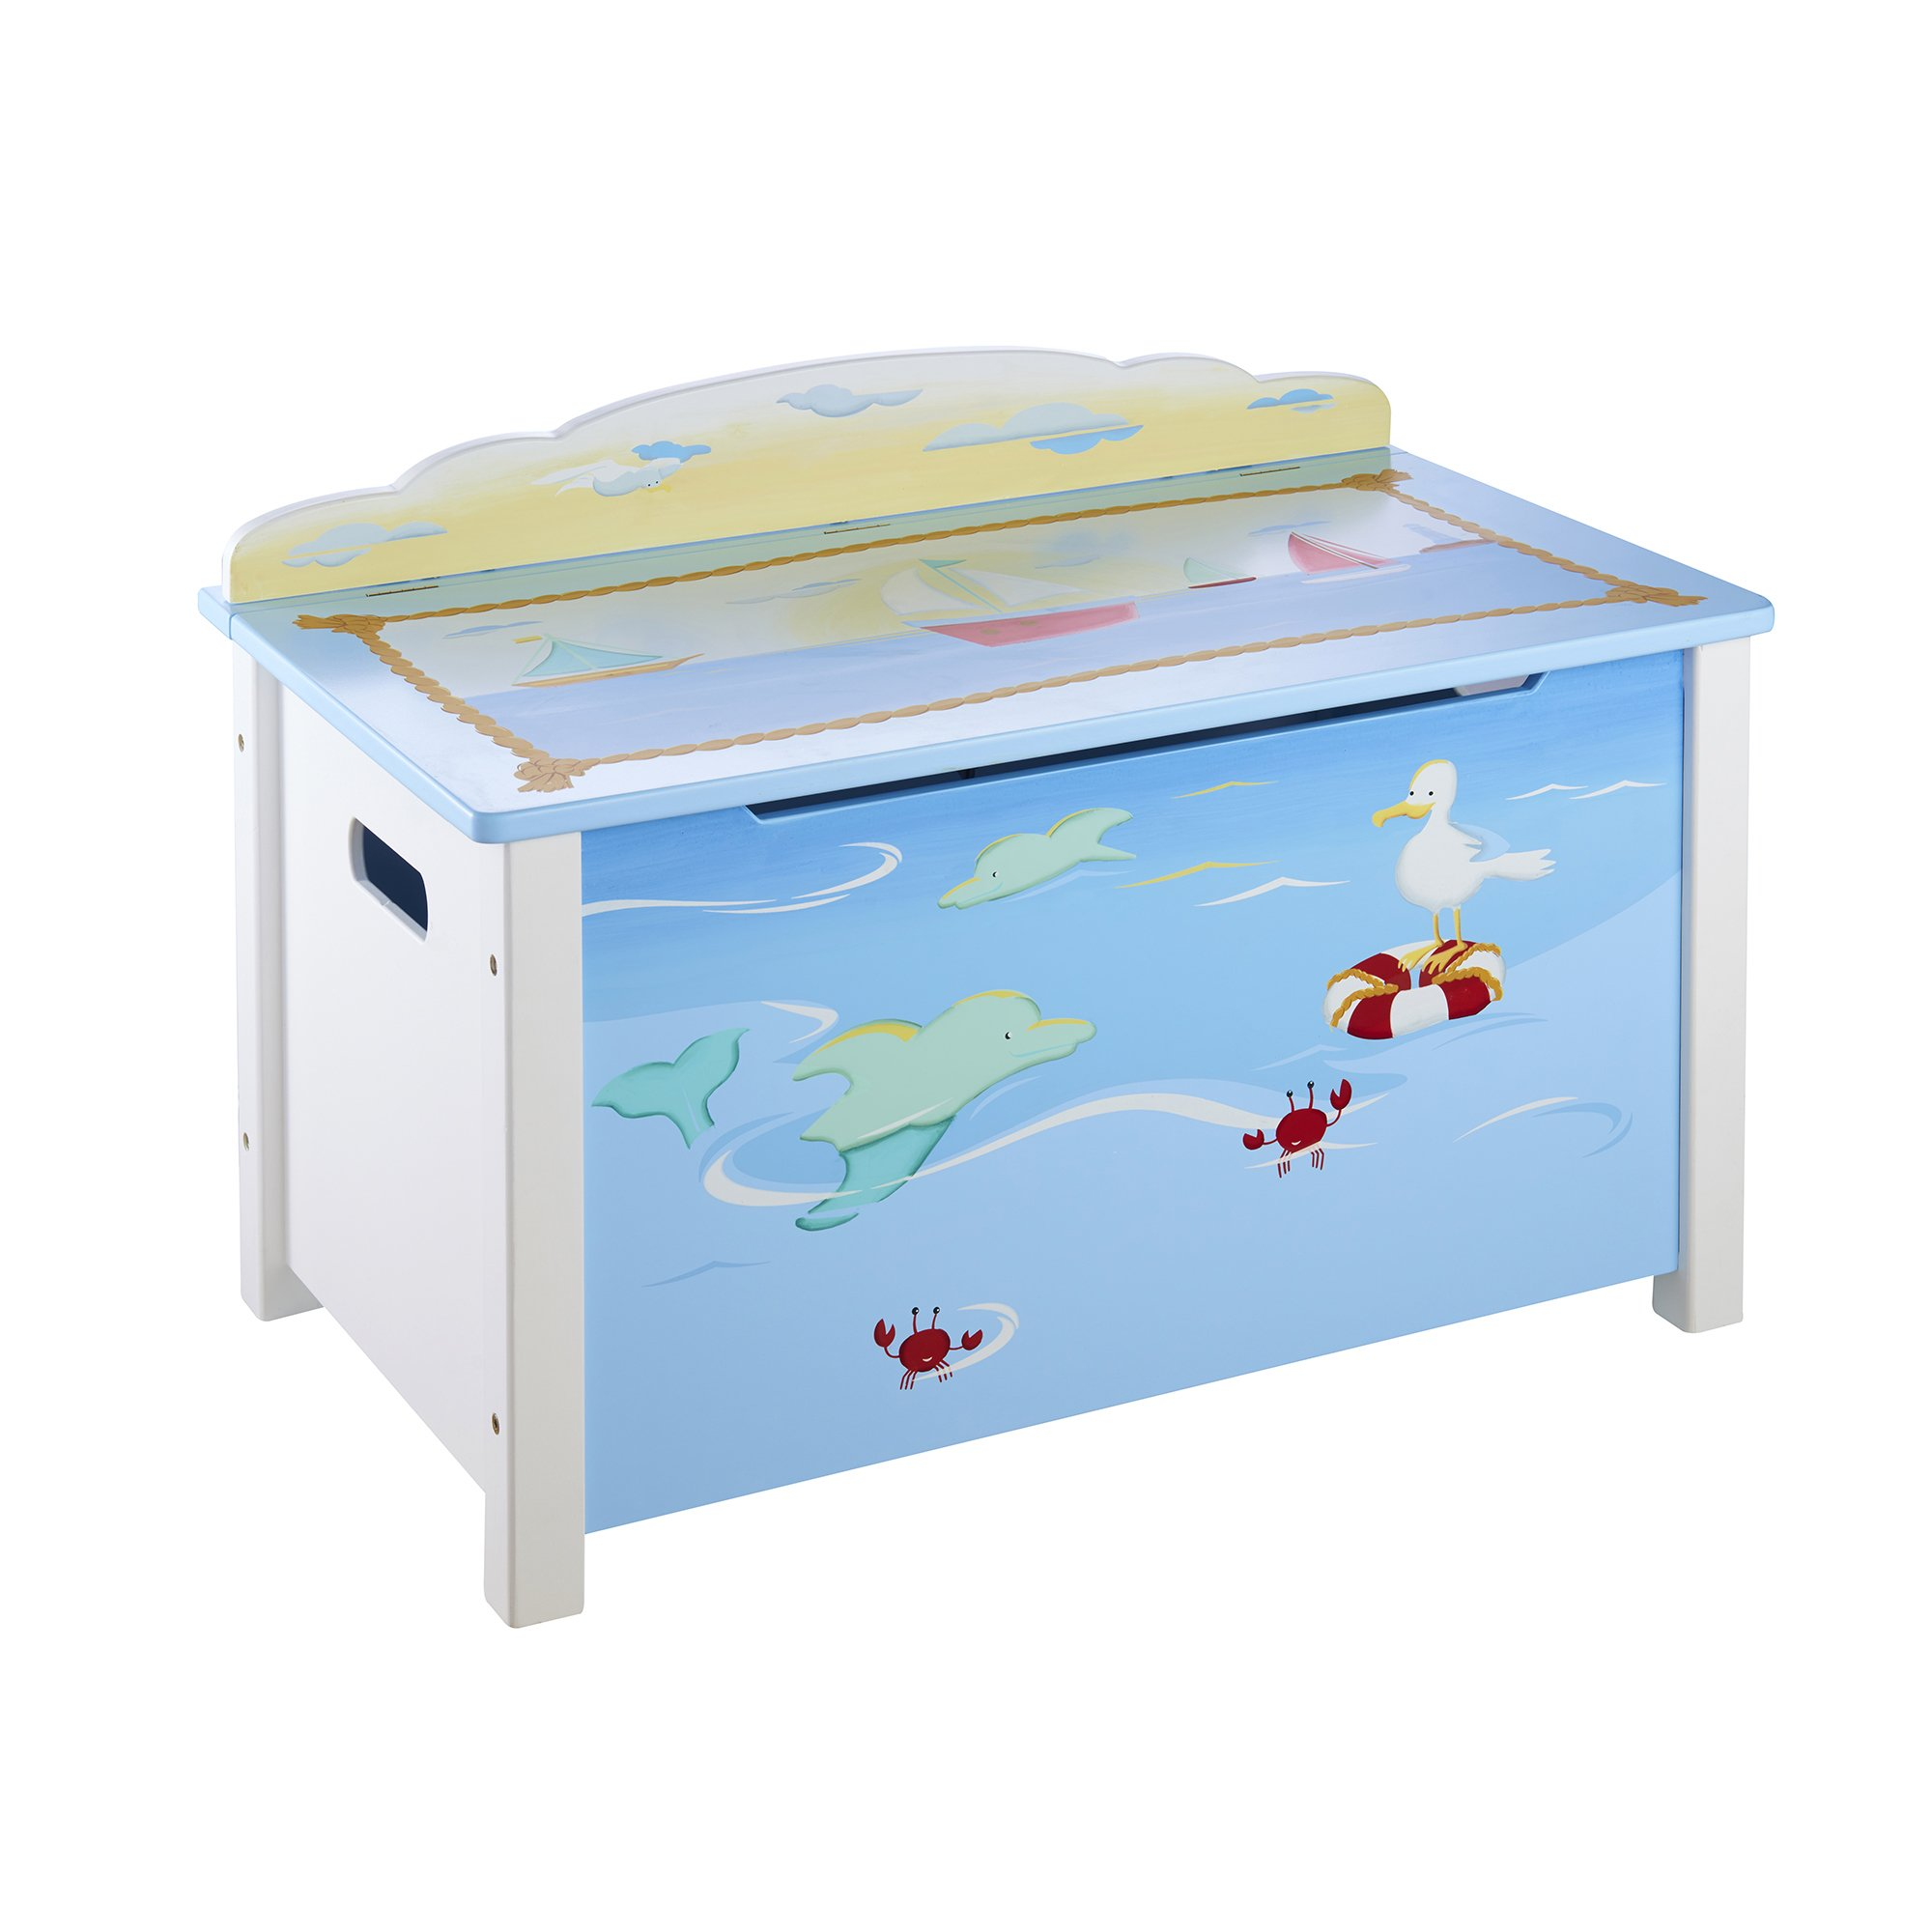 Guidecraft Wood Hand-Painted Sailing Toy Box - Toy Chest & Storage, Kids furniture